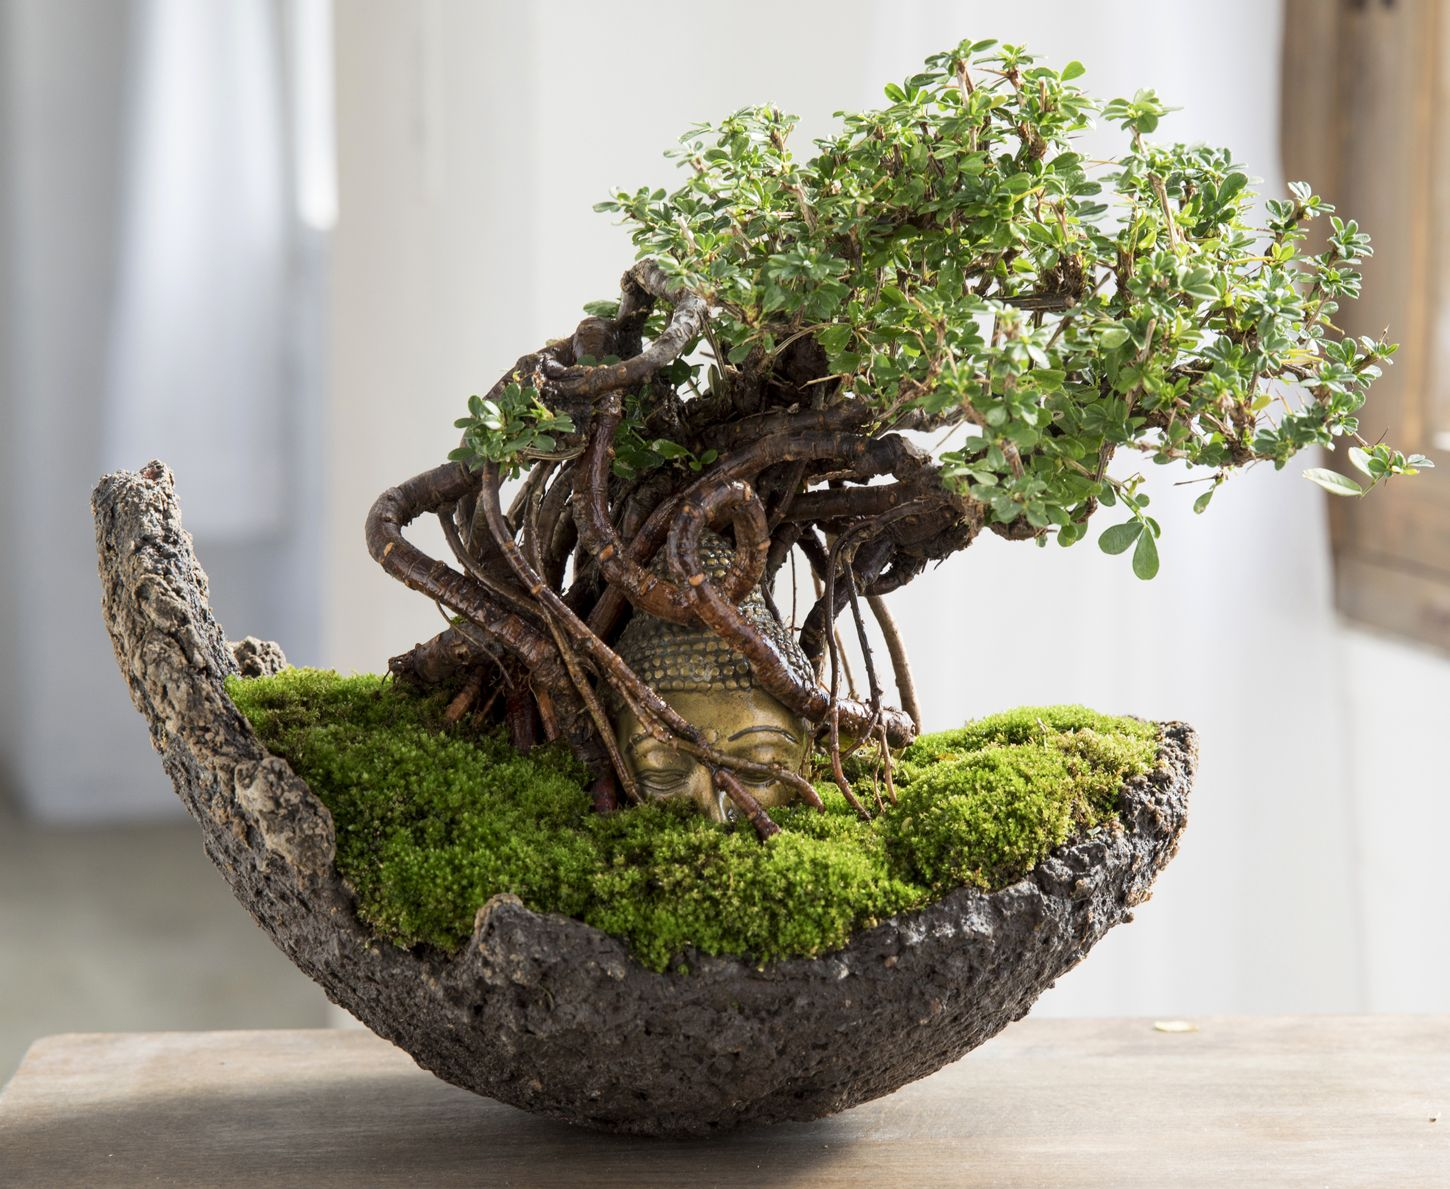 buddha bonsai bonsai pinterest plantes grasses cactus et plantes. Black Bedroom Furniture Sets. Home Design Ideas